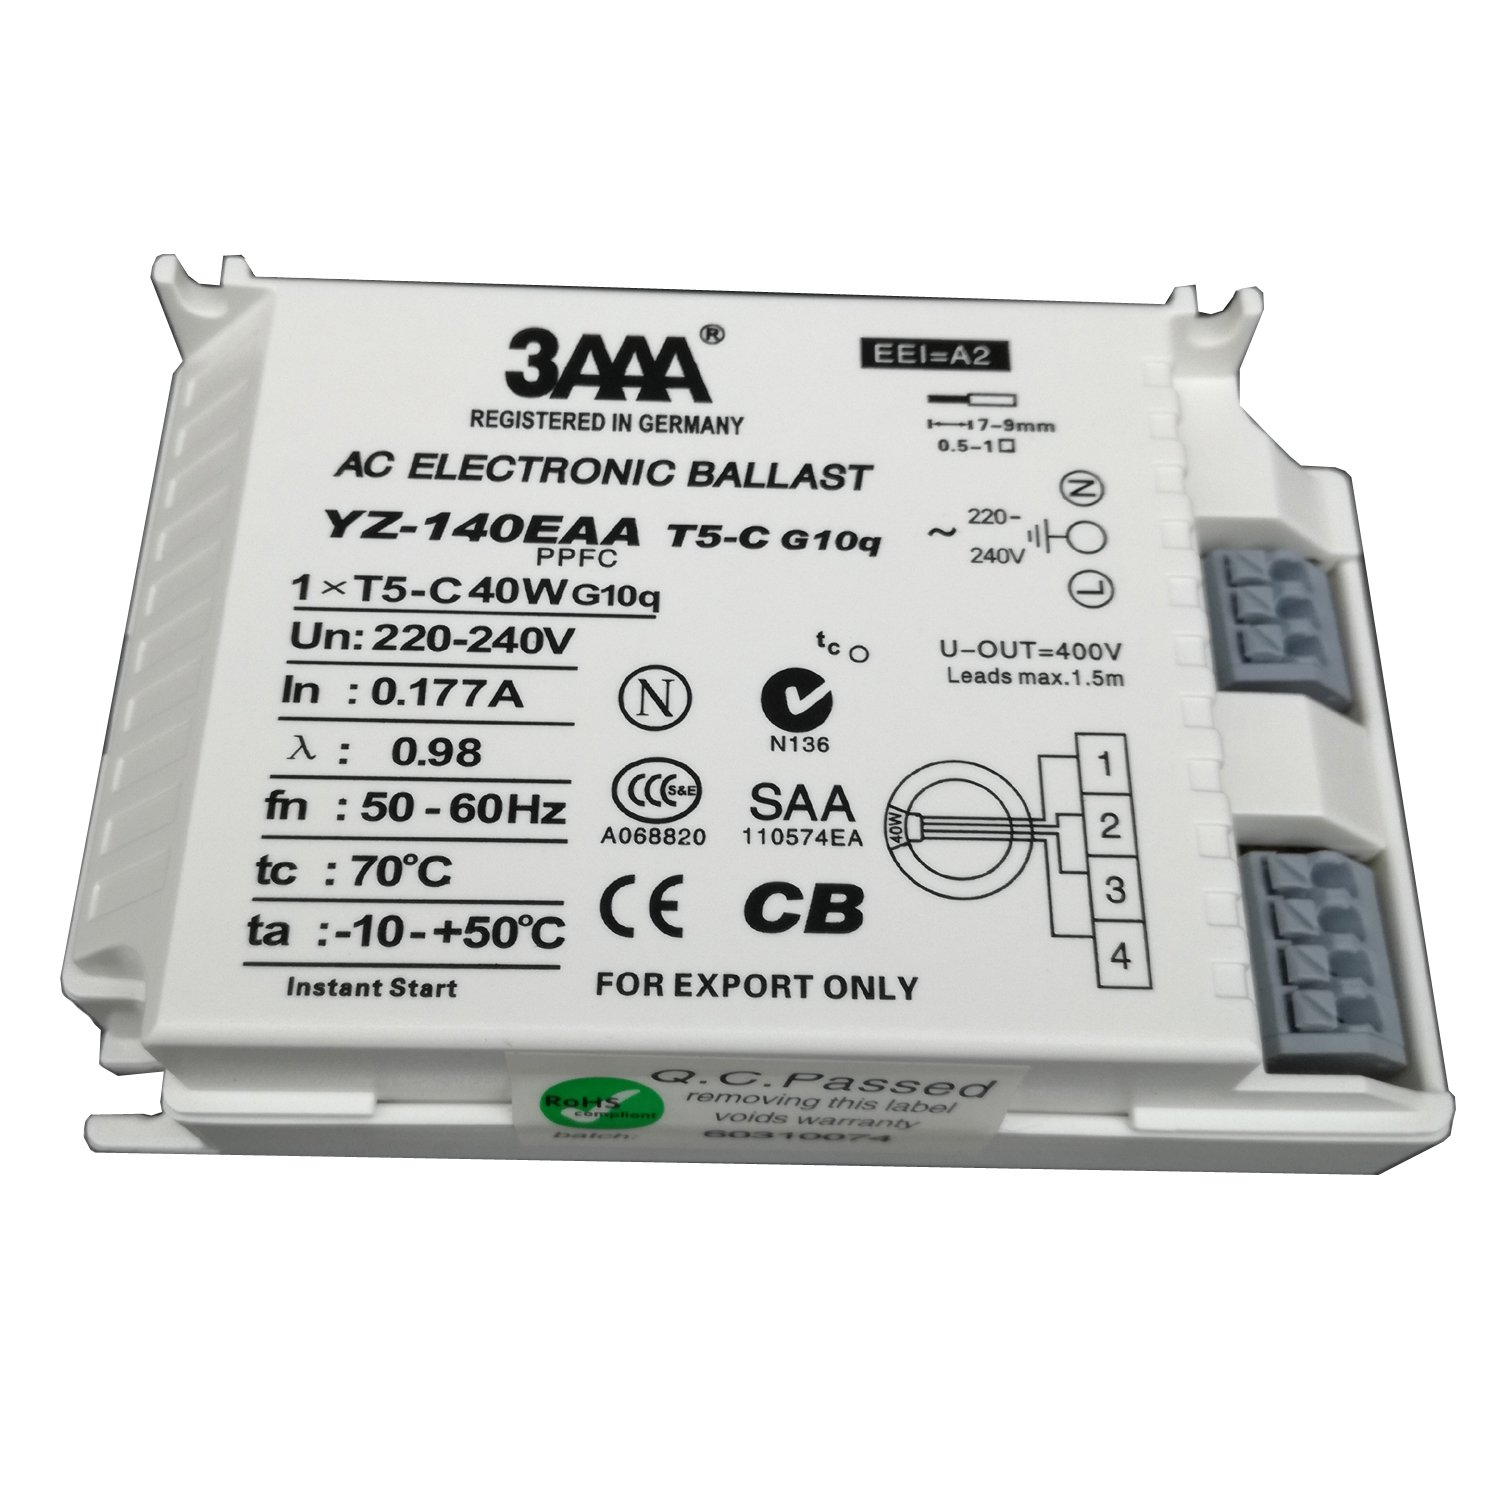 3AAA YZ140EAA-T5-C 40W AC Fluorecent Lamp Electronic Ballast For T5 Ring Lamp Standard Rectifiers, White Color Shenzhen DERUIFENG Lighting Co. ltd